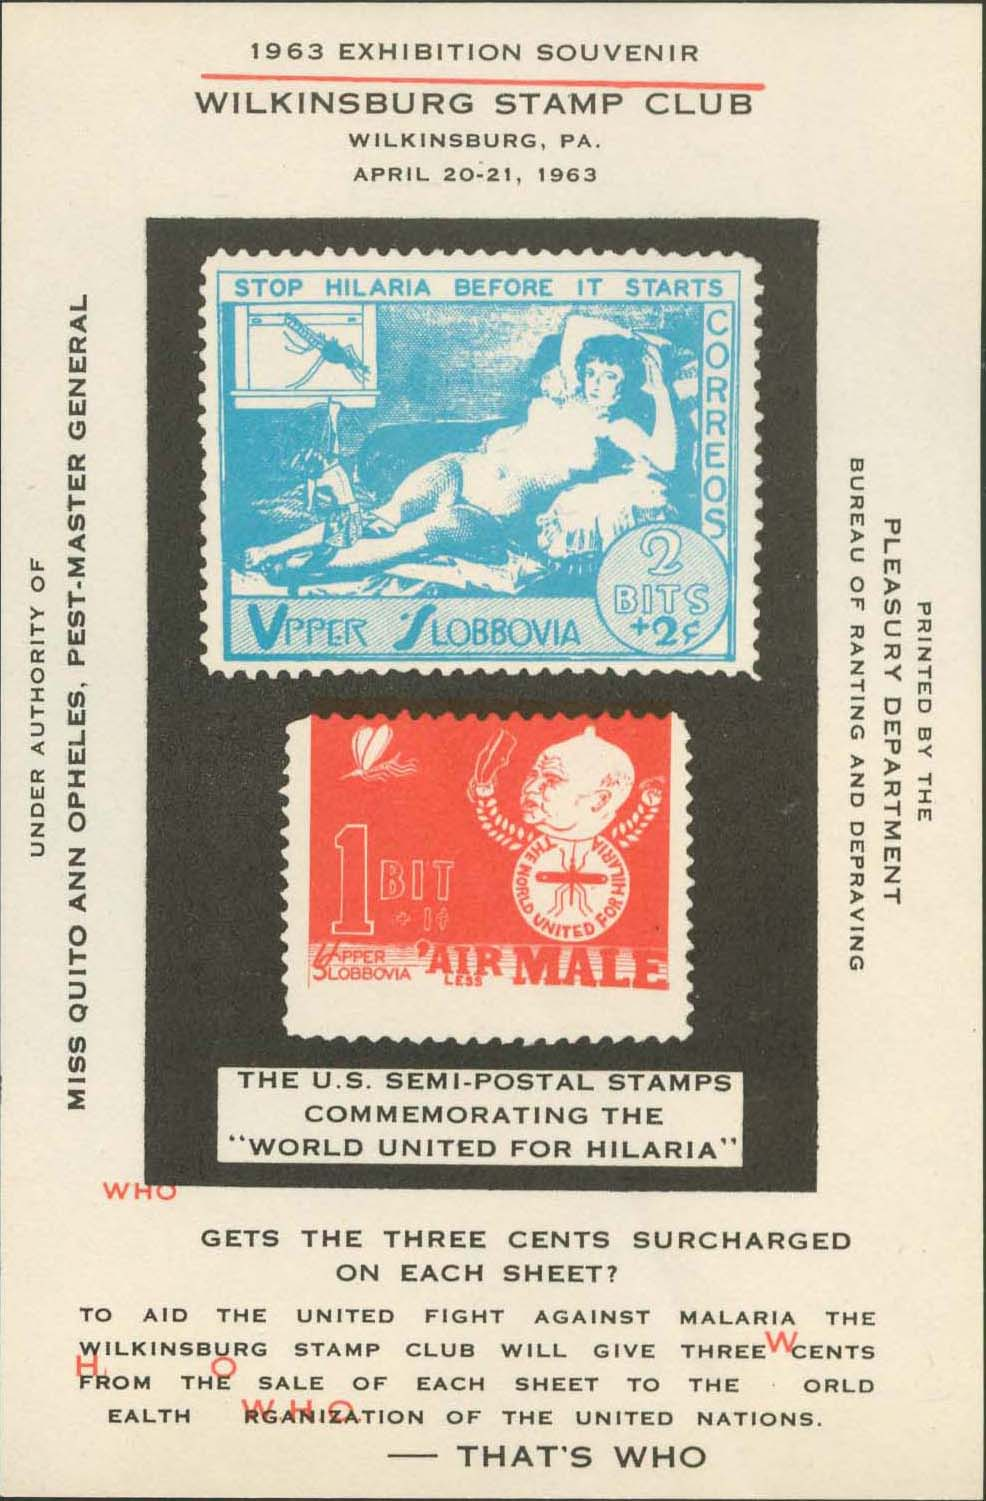 Wilkinsburg Stamp Club Souvenir Sheet<br />Red Shifted Up .27 Centimeters And Crocked.